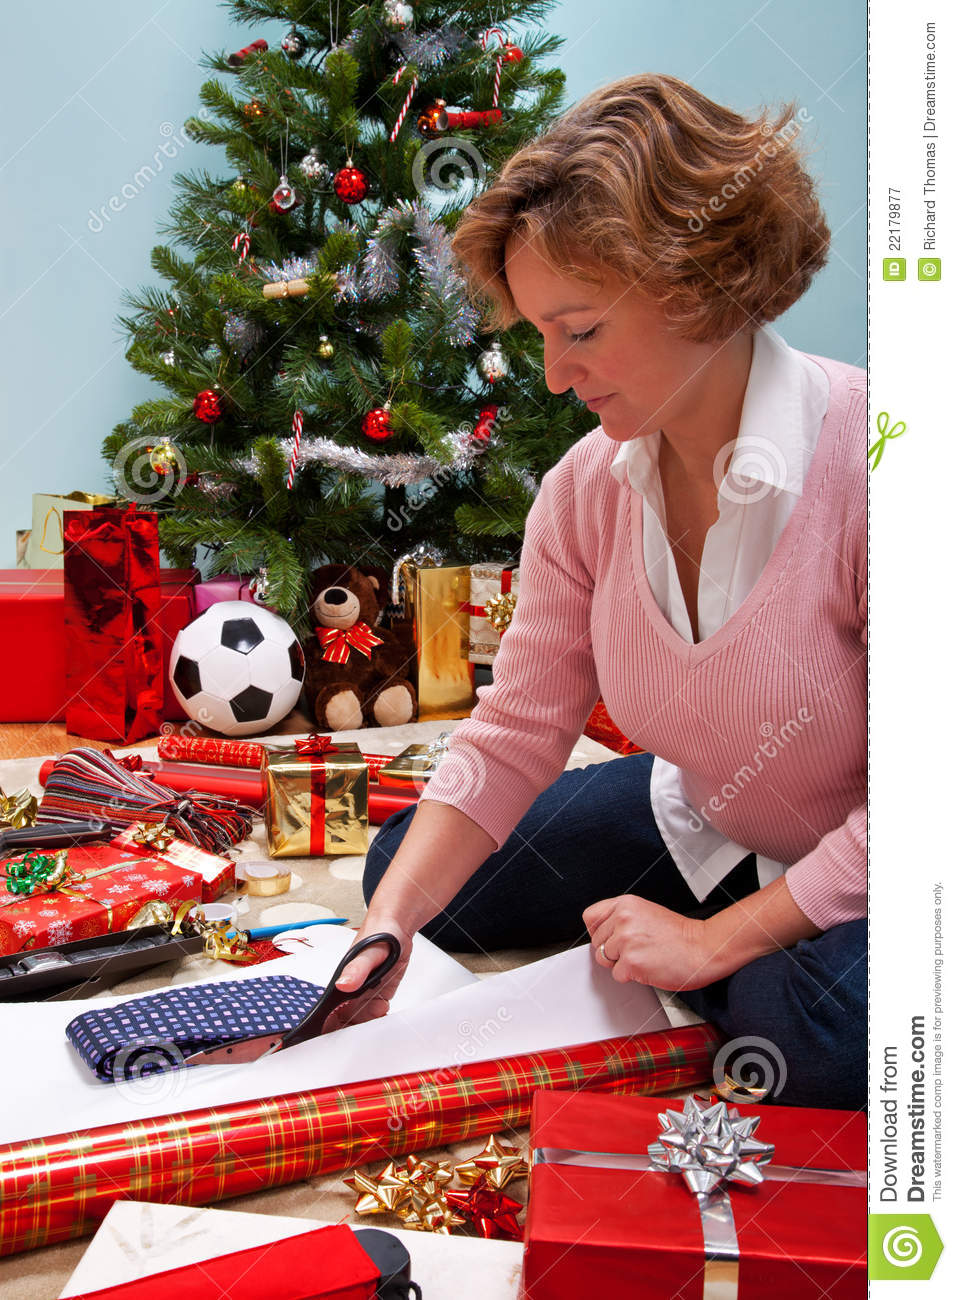 Woman Wrapping Christmas Presents Royalty Free Stock